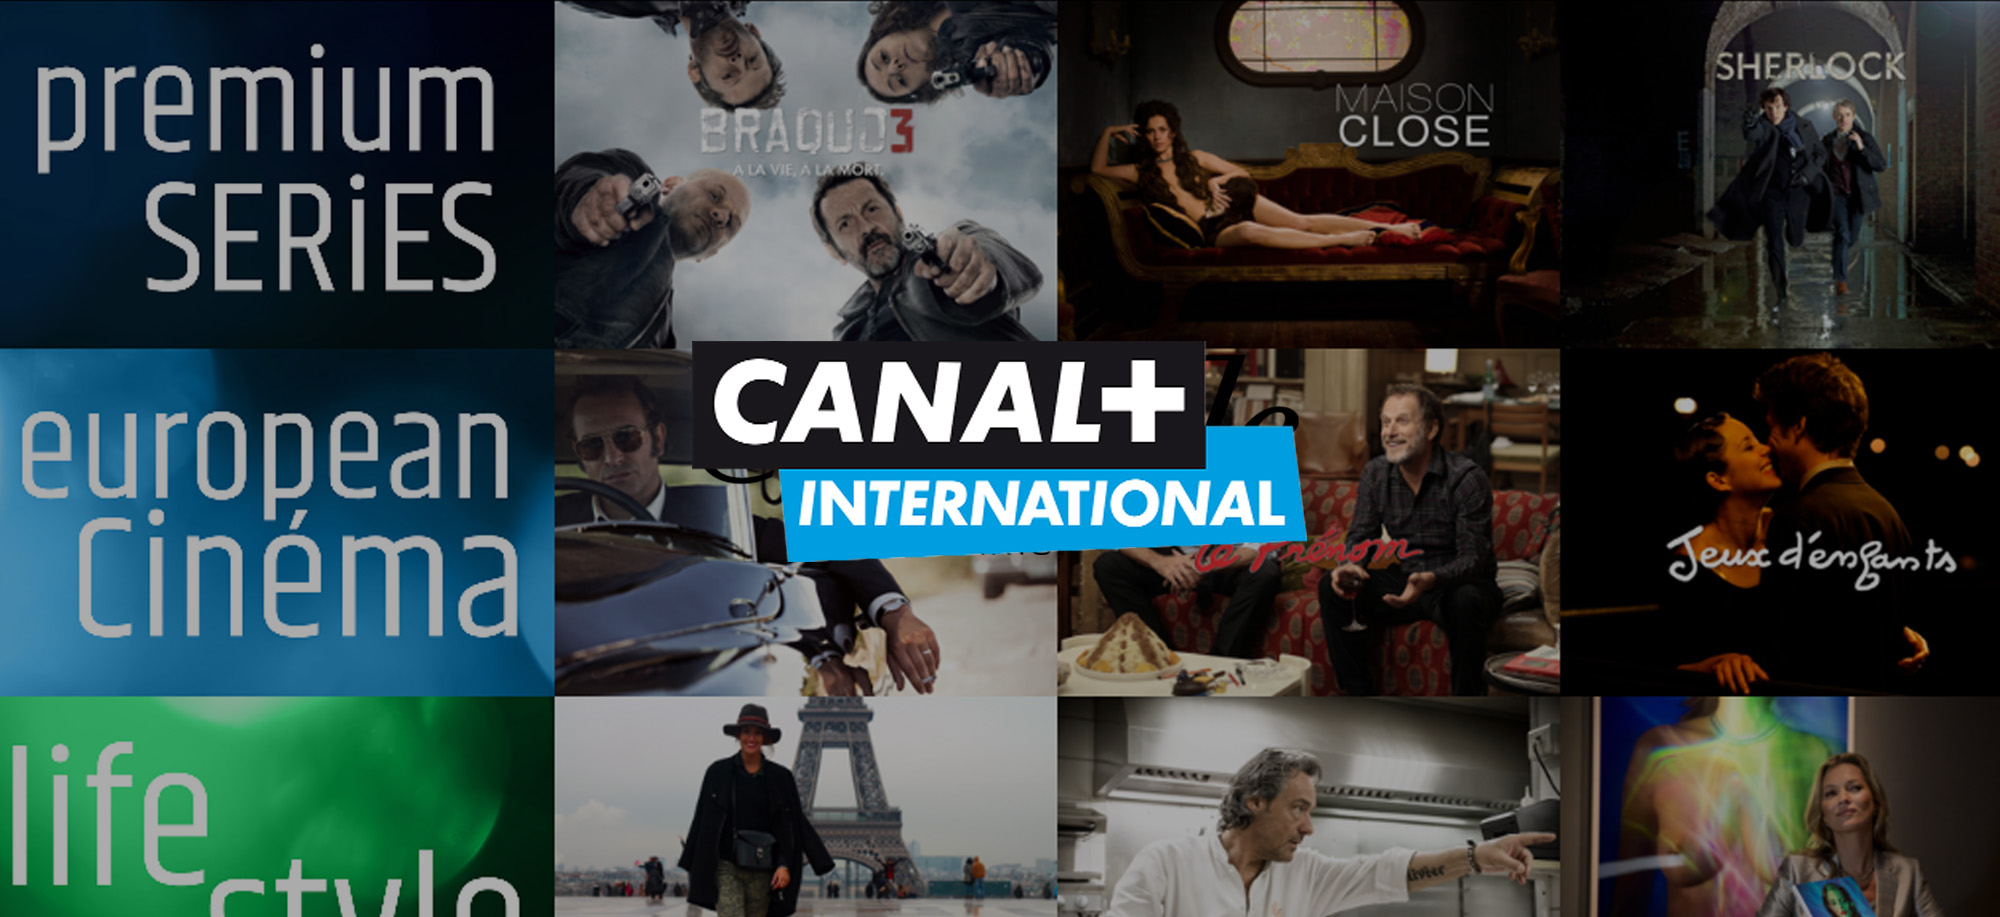 Canal + International lancé aux USA en mars 2018